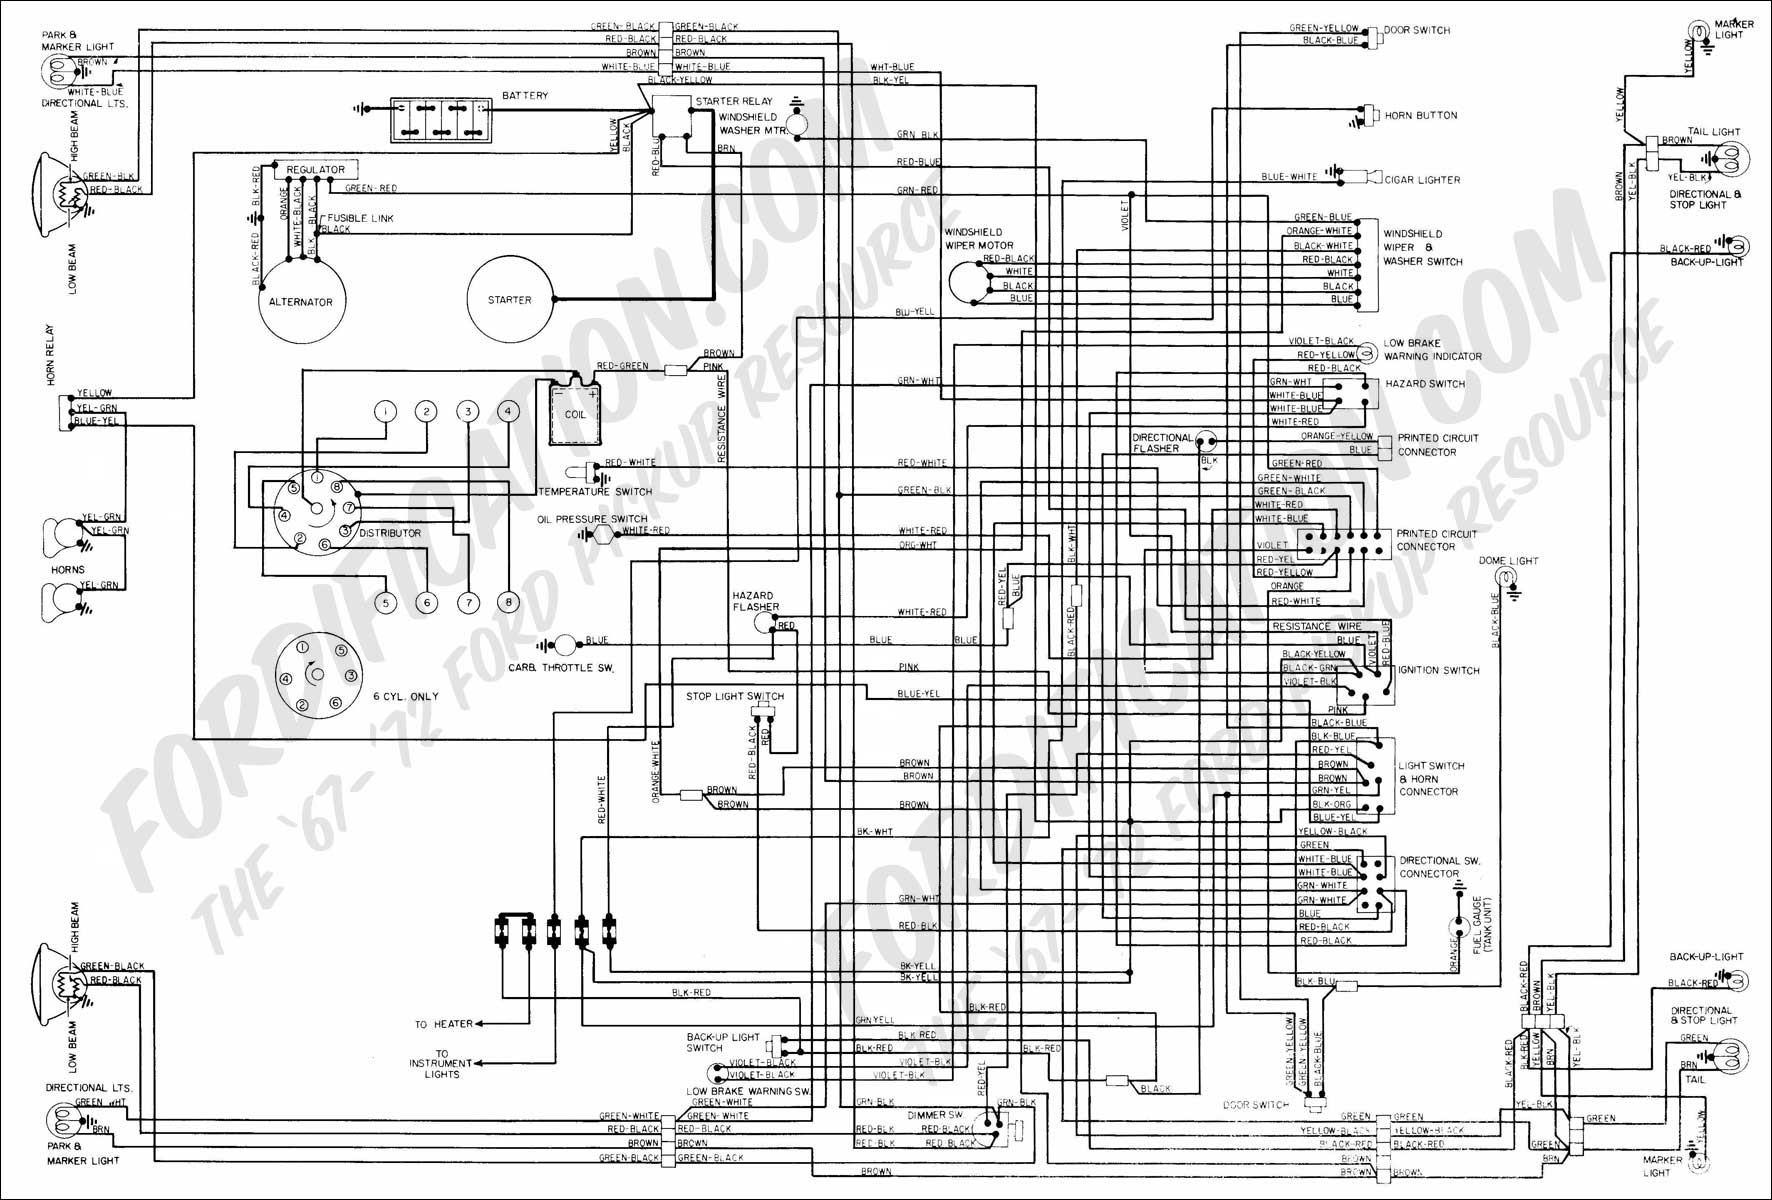 wiring diagram 72_quick 2002 ford f250 wiring diagram efcaviation com 1999 ford f350 wiring diagram at couponss.co